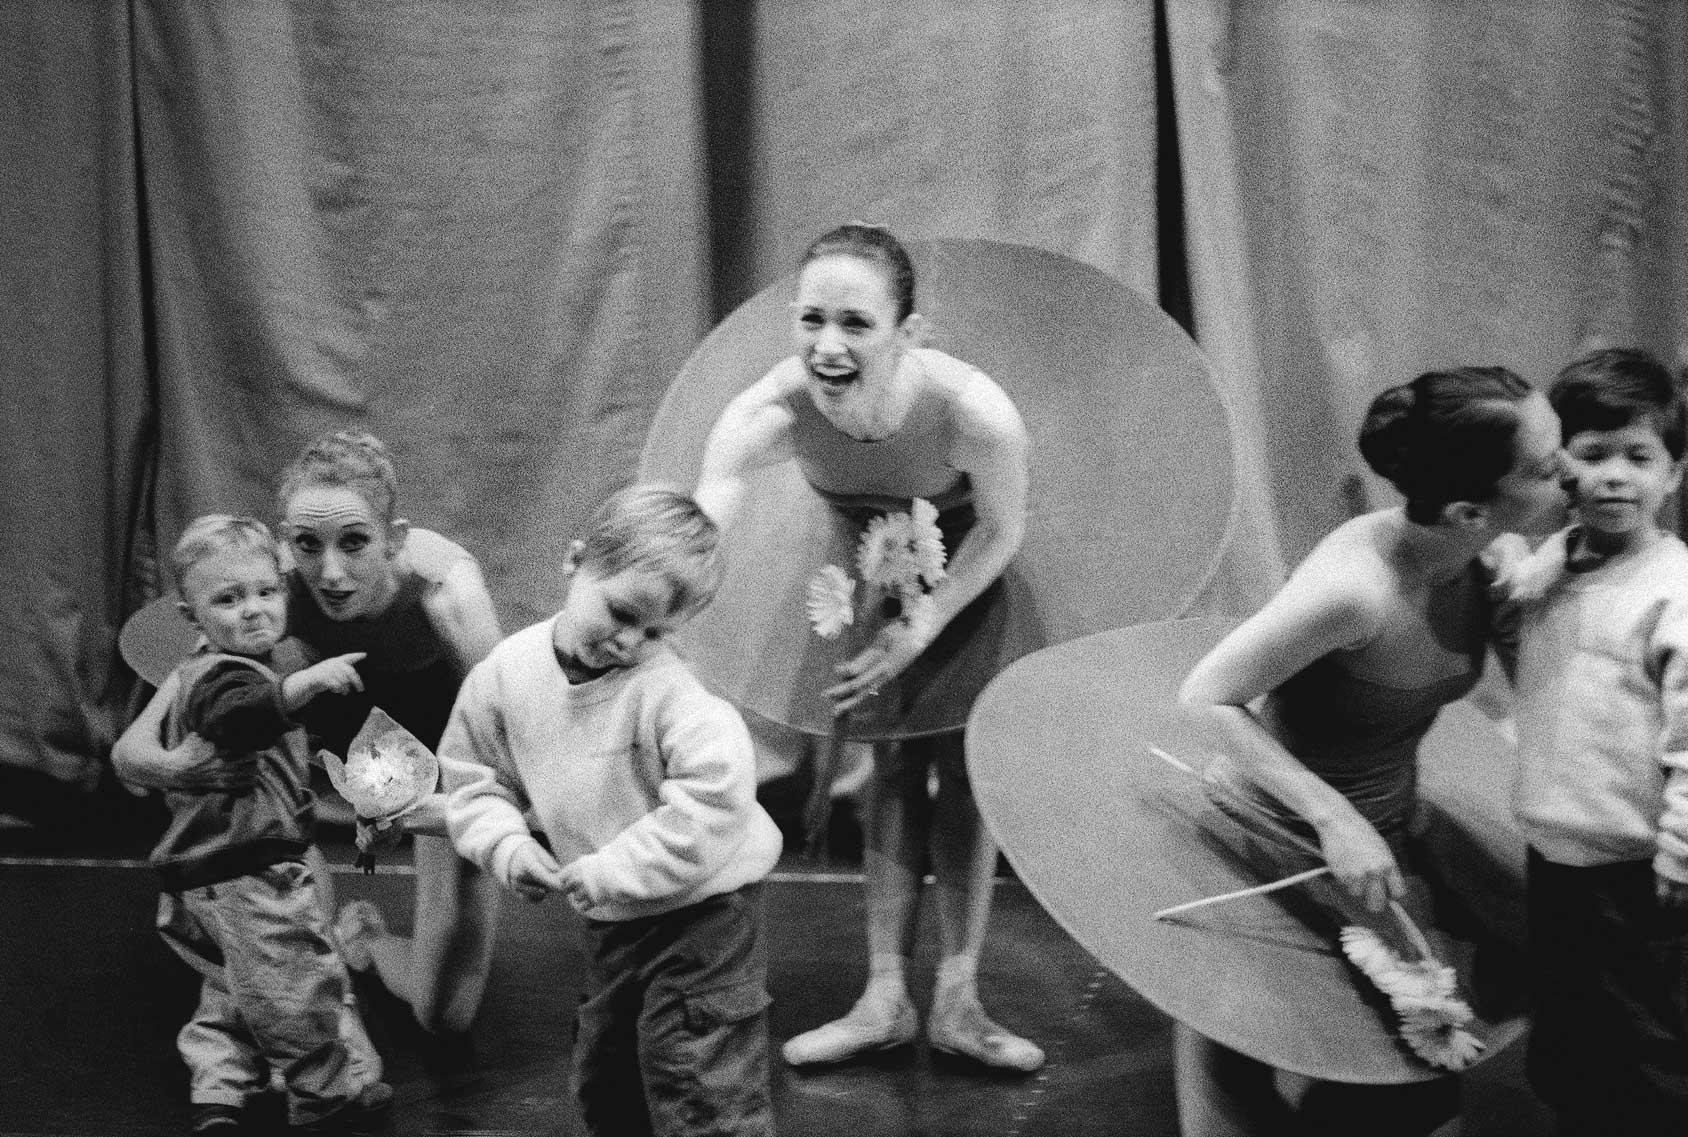 All have sons: Katita Waldo and James Crutcher; Tina LeBlanc and Marinko Jerkunica; Kristin and Kai Long, backstage after a performance of The Vertiginous Thrill of Exactitude. 2002. Balancing Acts: Three Prima Ballerinas Becoming Mothers.